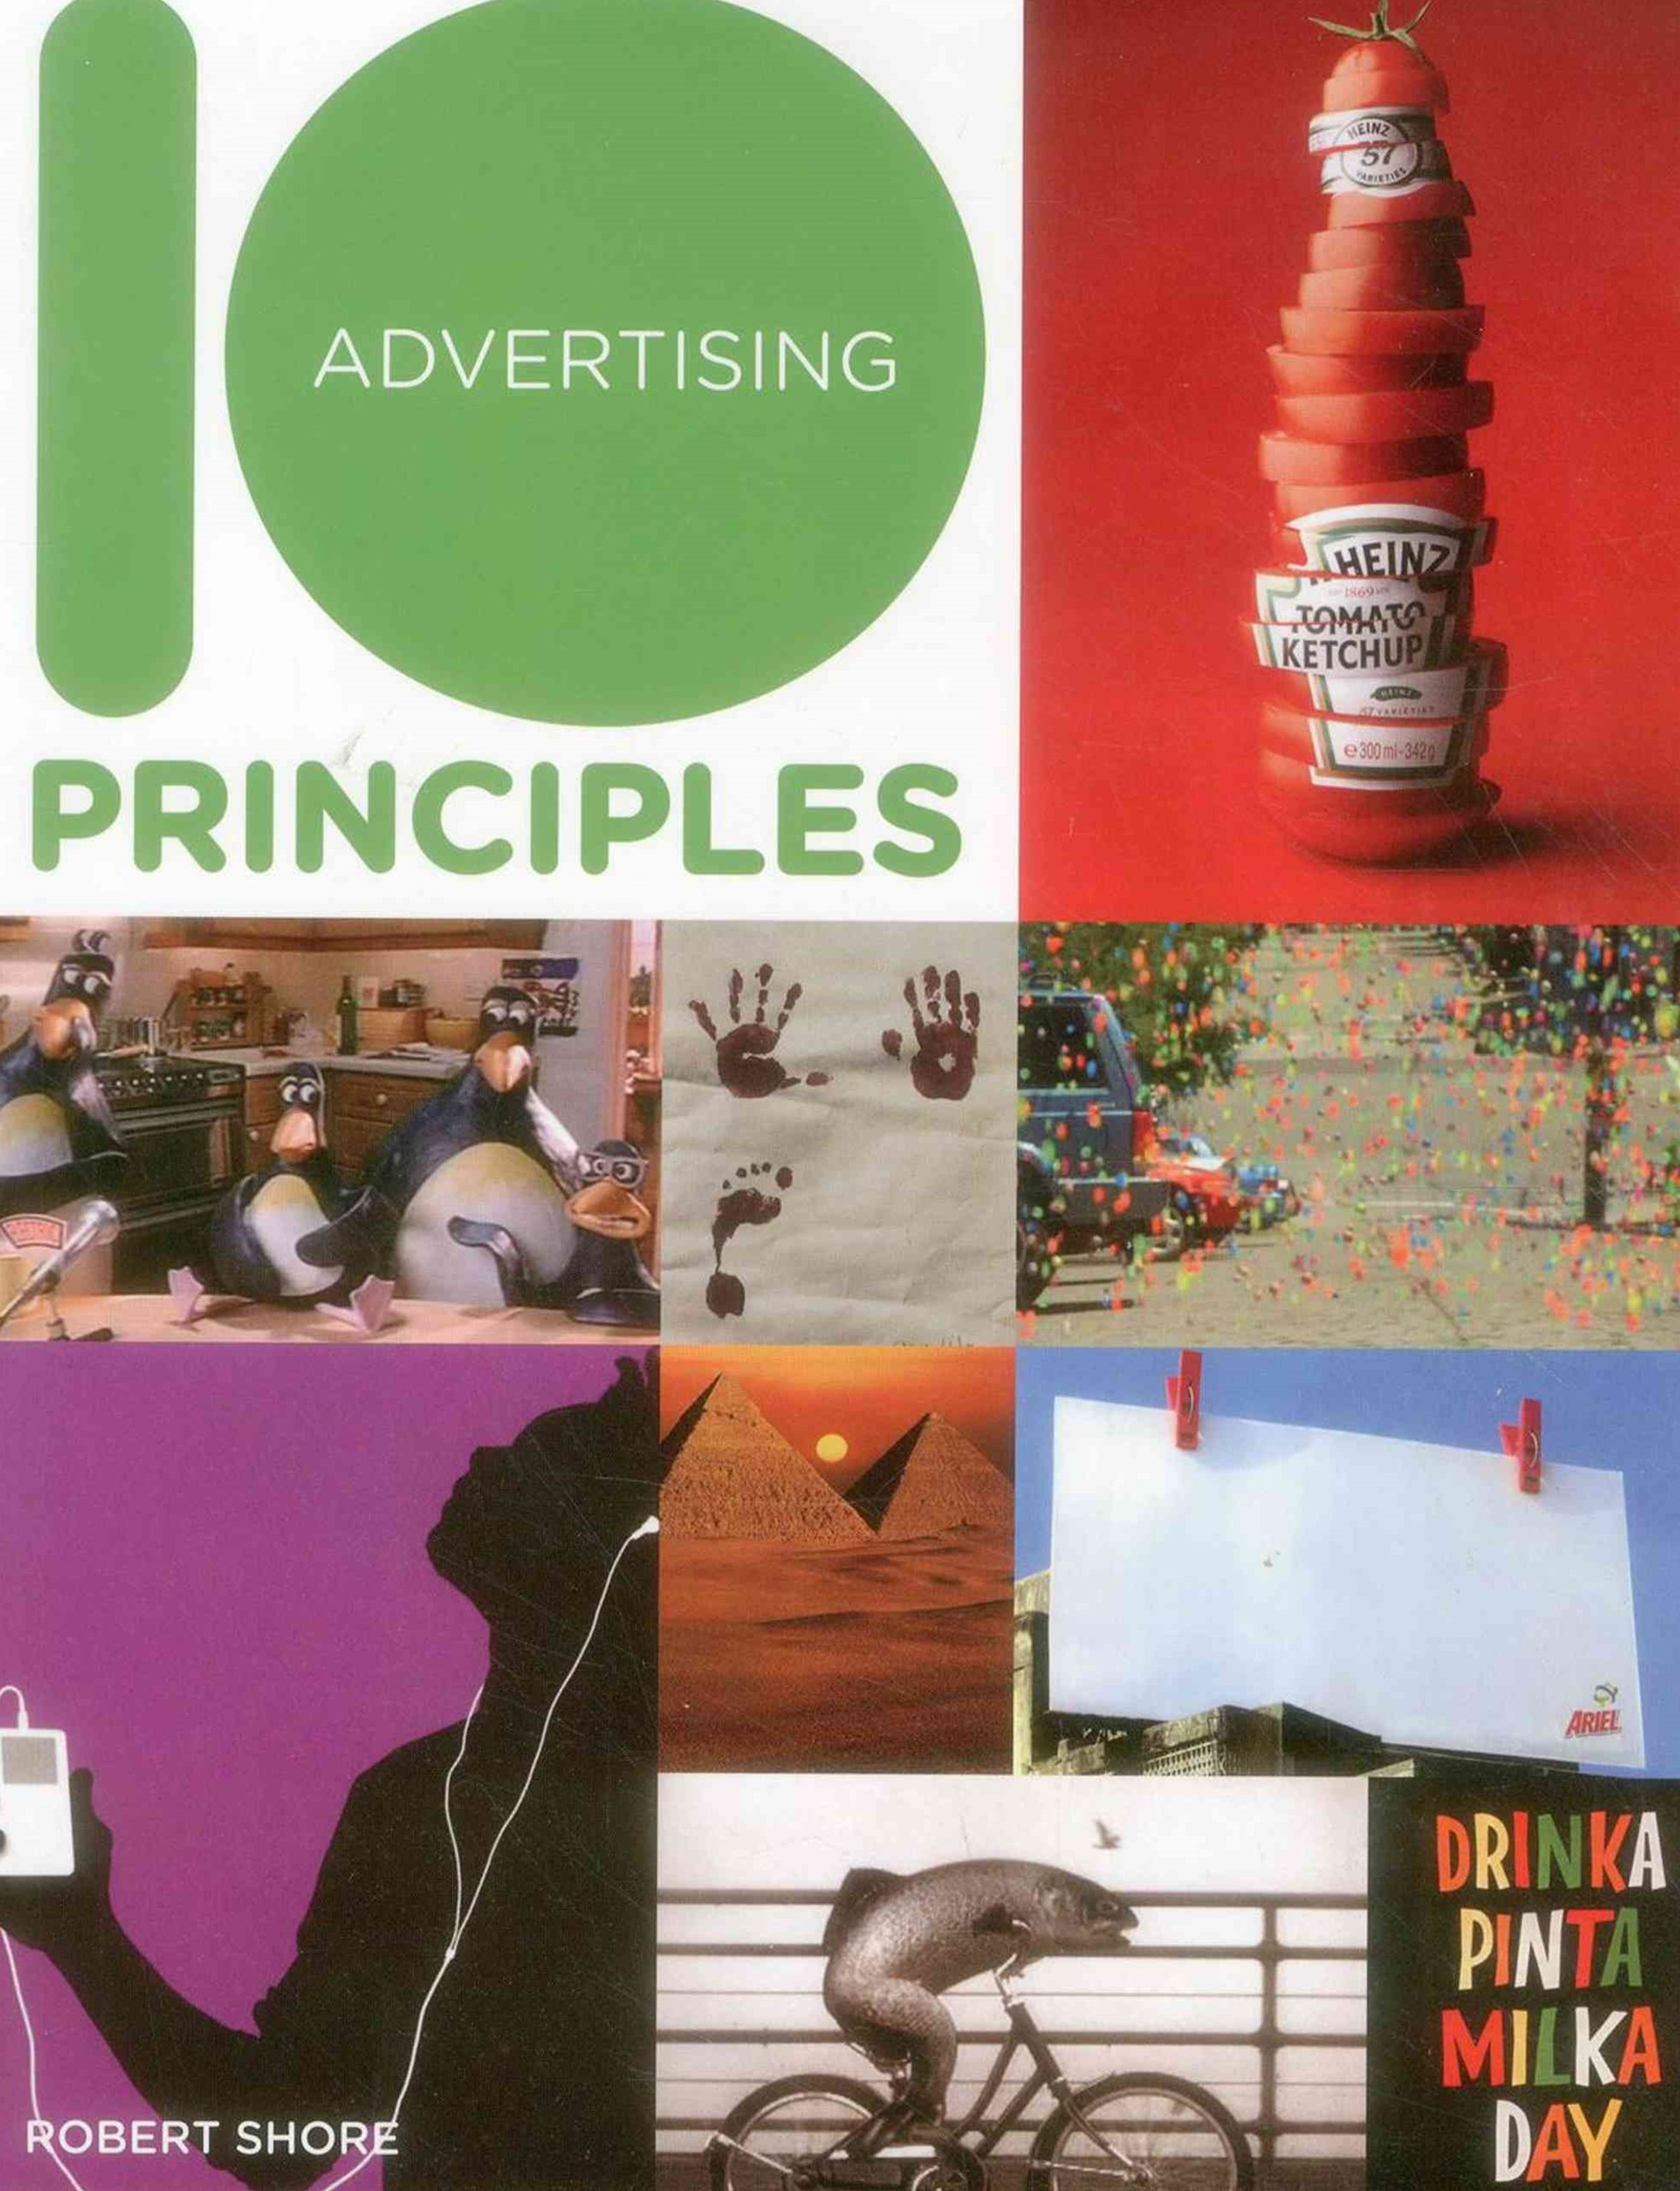 10 Principles of Good Advertising